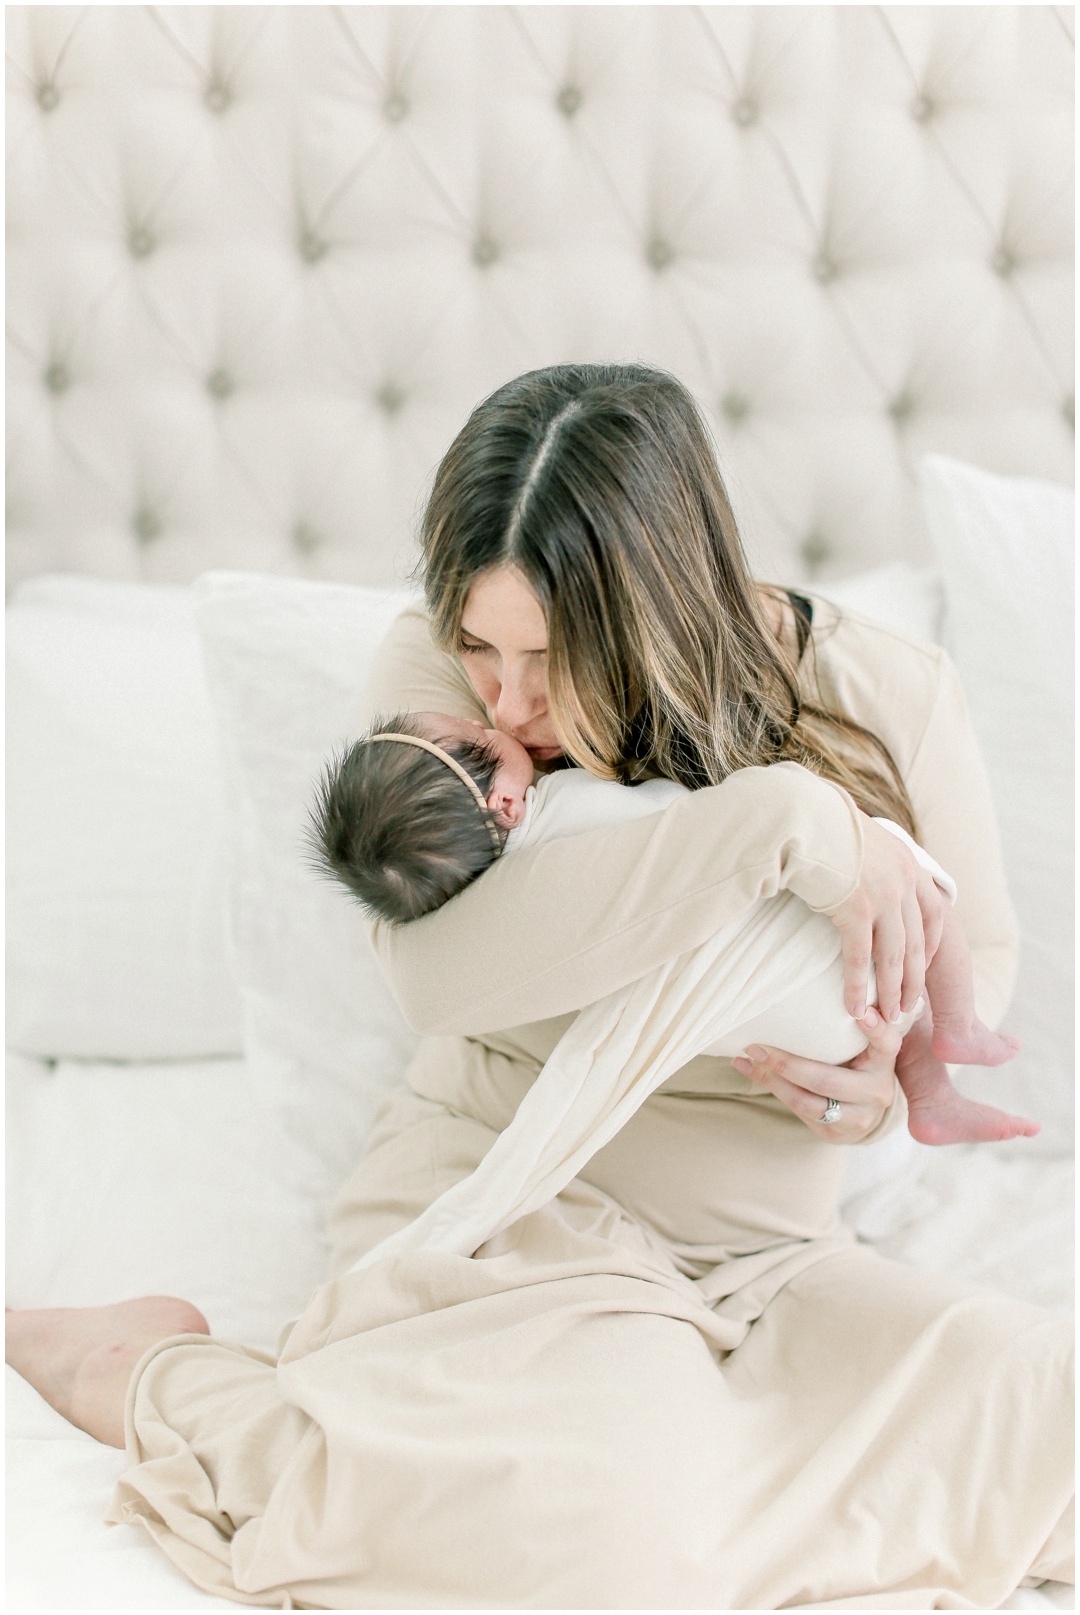 Newport_Beach_Newborn_Light_Airy_Natural_Photographer_Newport_Beach_In-Home_Photographer_Orange_County_Family_Photographer_Cori_Kleckner_Photography_Huntington_Beach_Photographer_Family_OC_Newborn_Blair_Sharpe_Ricky_Sharpe_Newborn_Family__3177.jpg